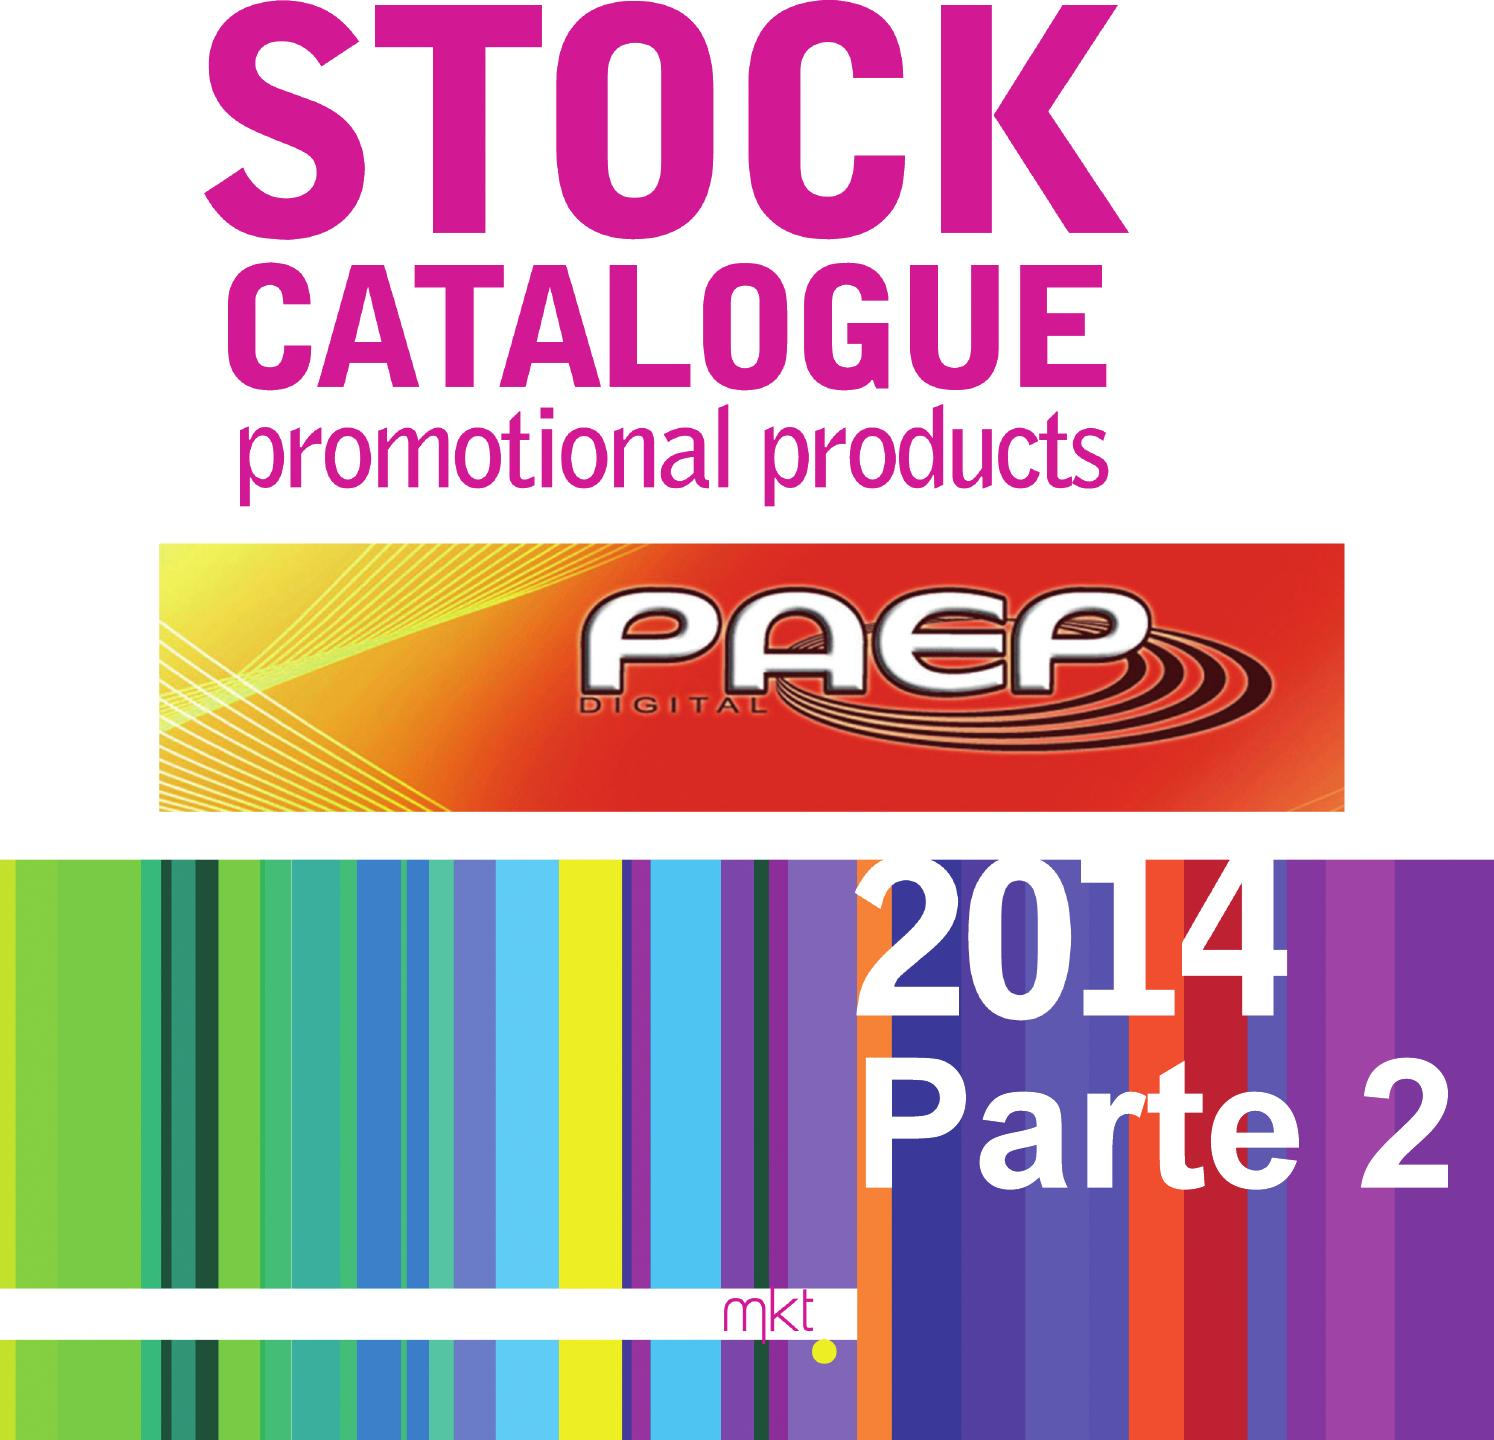 Quadro Pool Abdeckung Xxl Catalago Makito 2014 Parte 2 By Paep Digital Imprenta Issuu